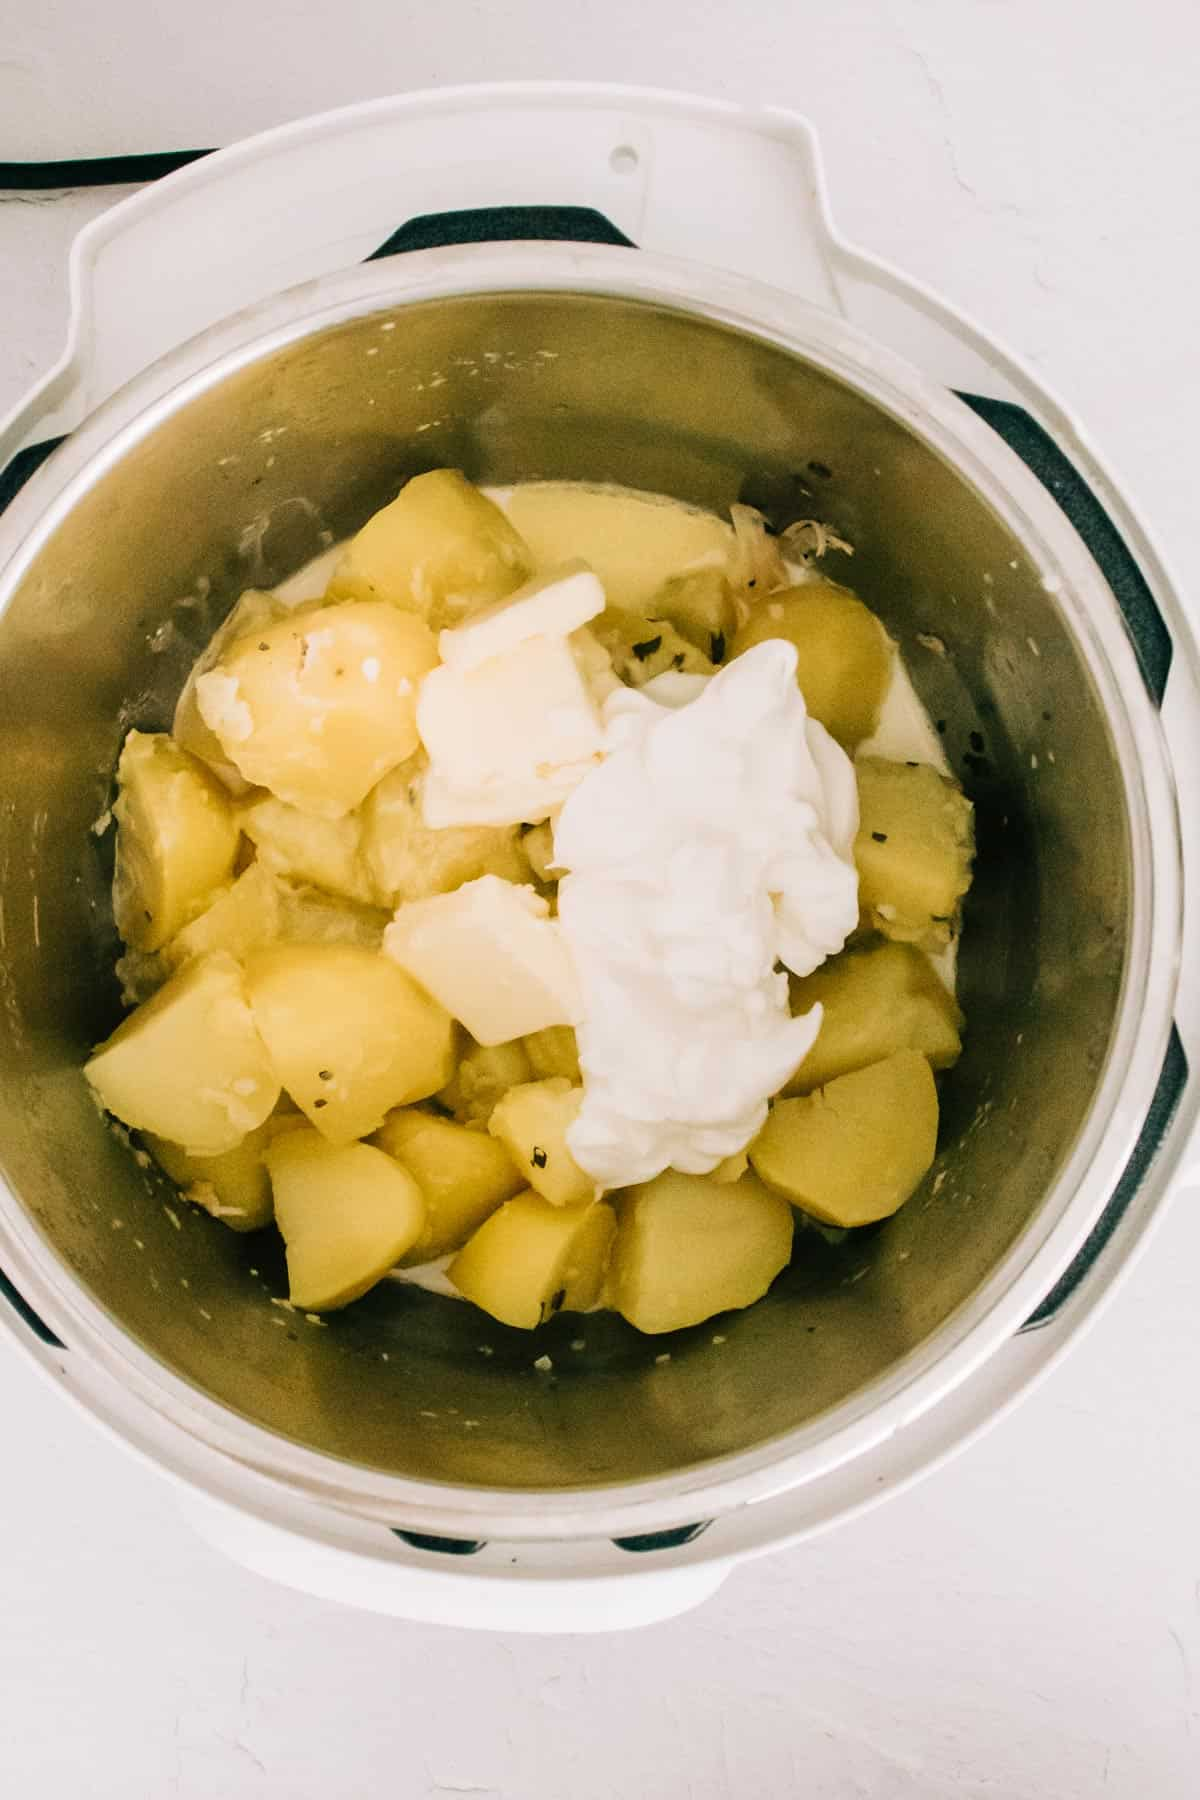 potatoes and sour cream in an Instant Pot